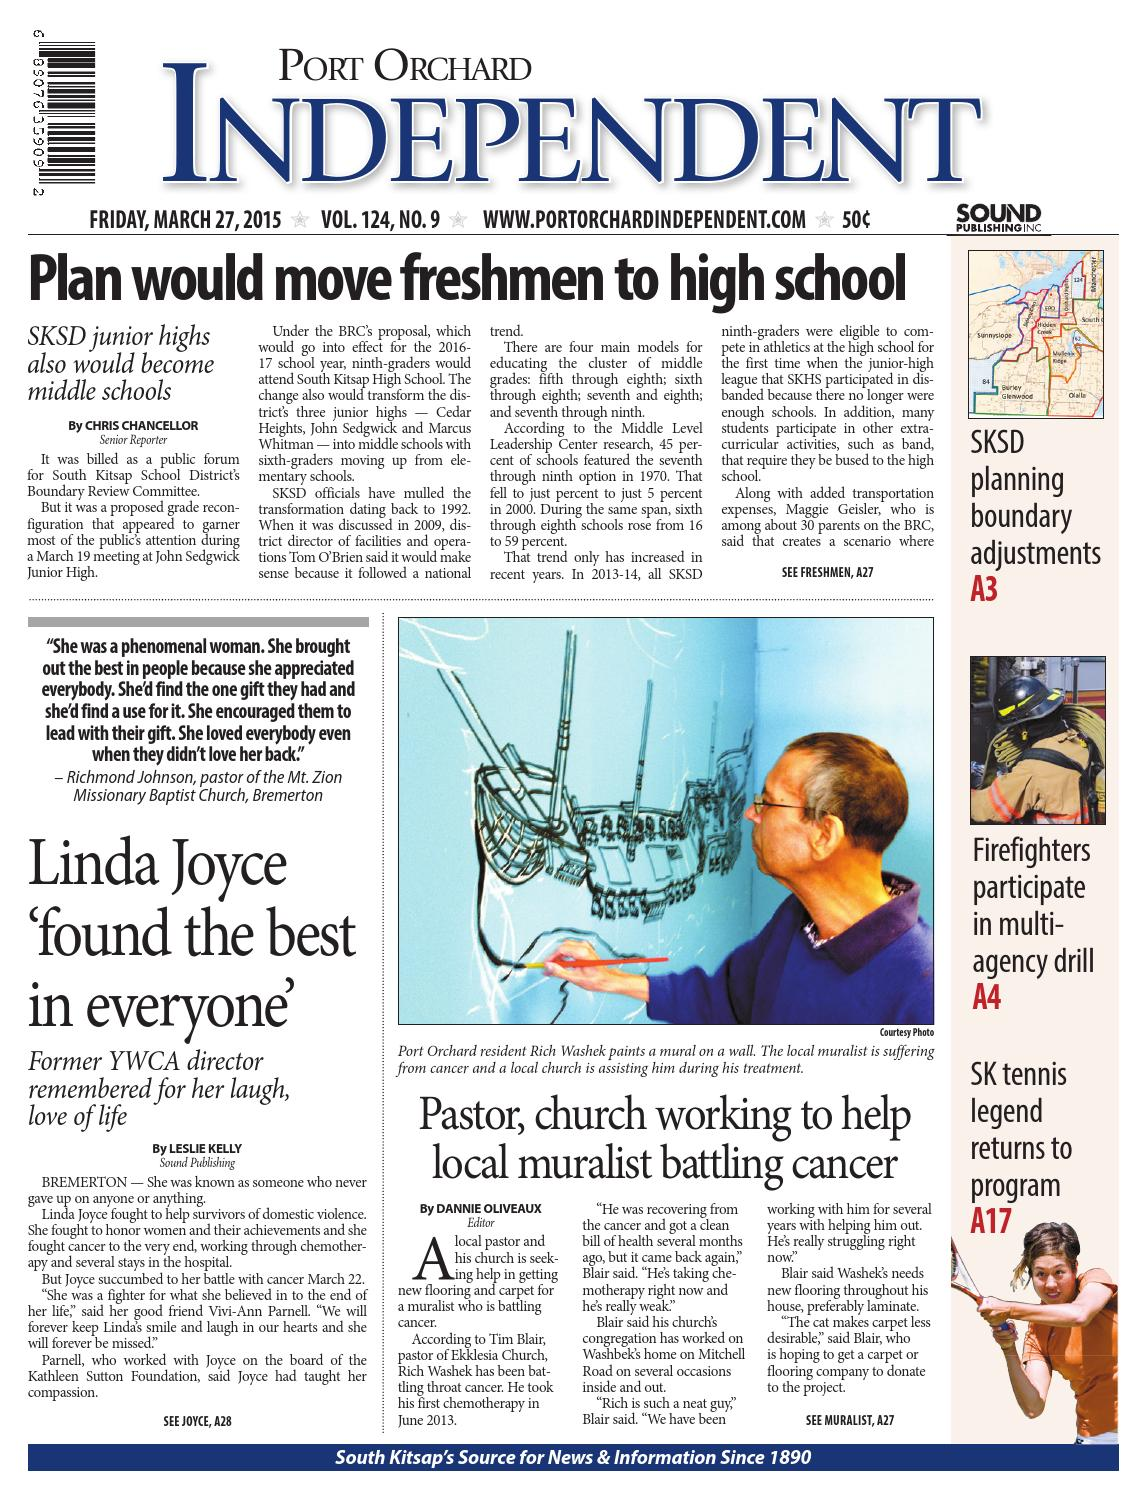 Port Orchard Independent, March 27, 2015 by Sound Publishing - issuu